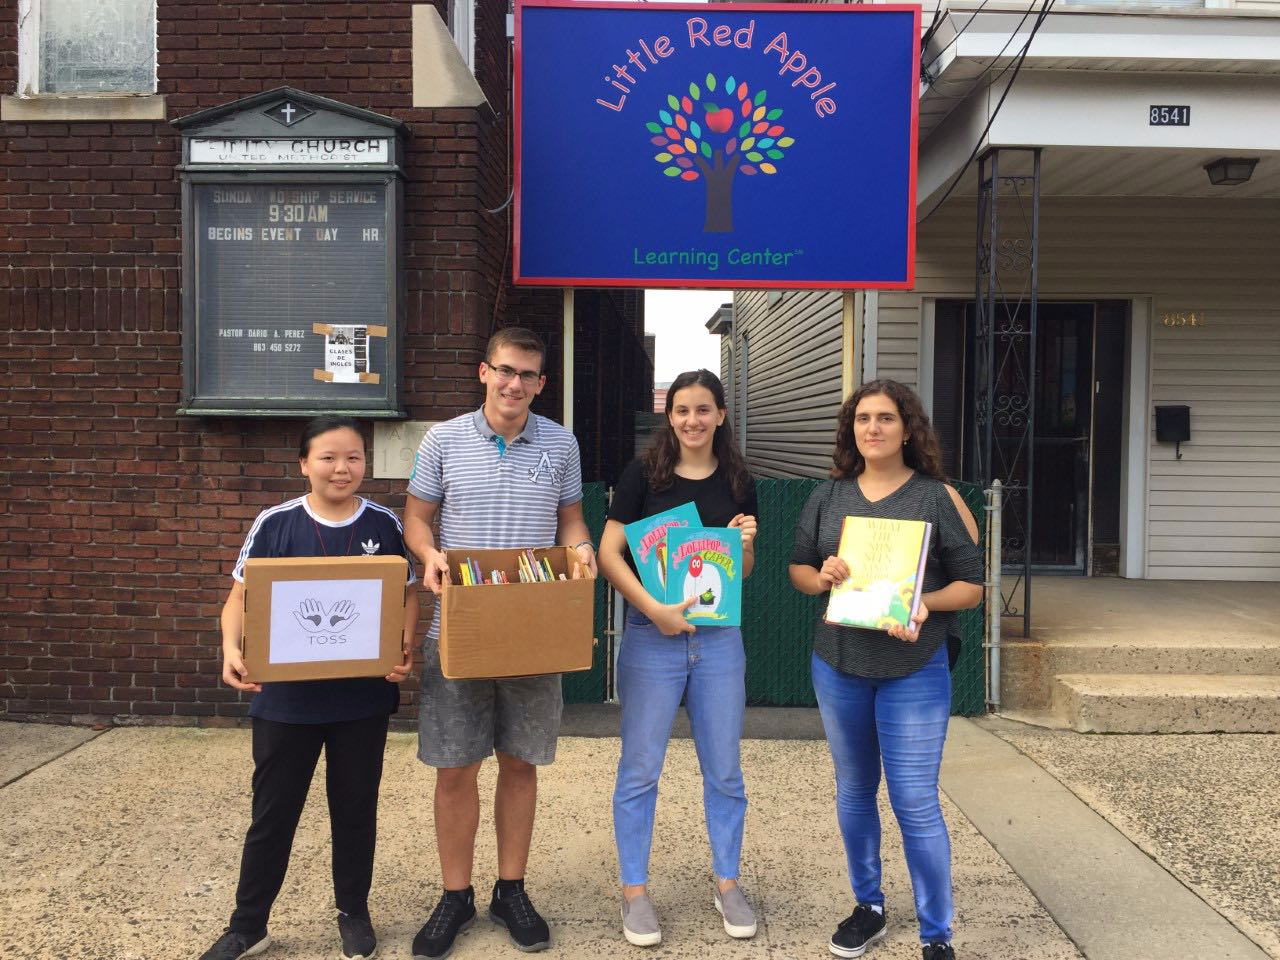 NY/NJ branch's latest delivery to Little Red Apple Learning Center in North Bergen, New Jersey. They donated around 50 books to student between the ages of 3-5.